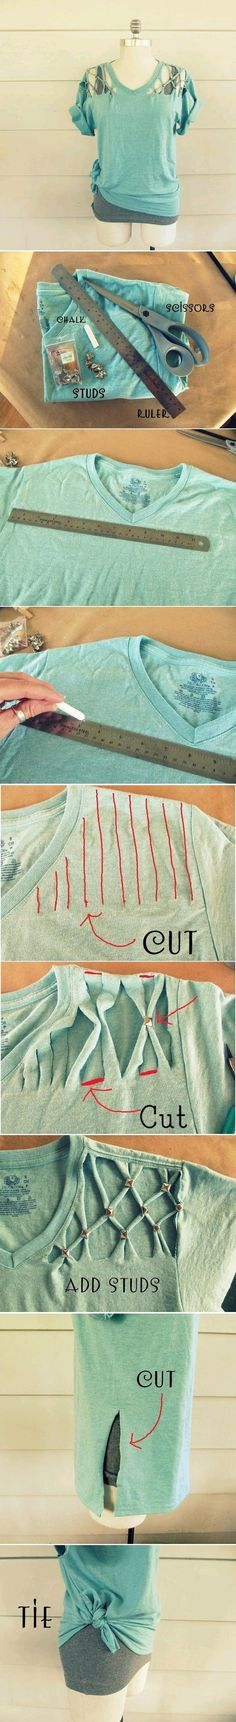 DIY Cool Studded T-Shirt @Jacqueline